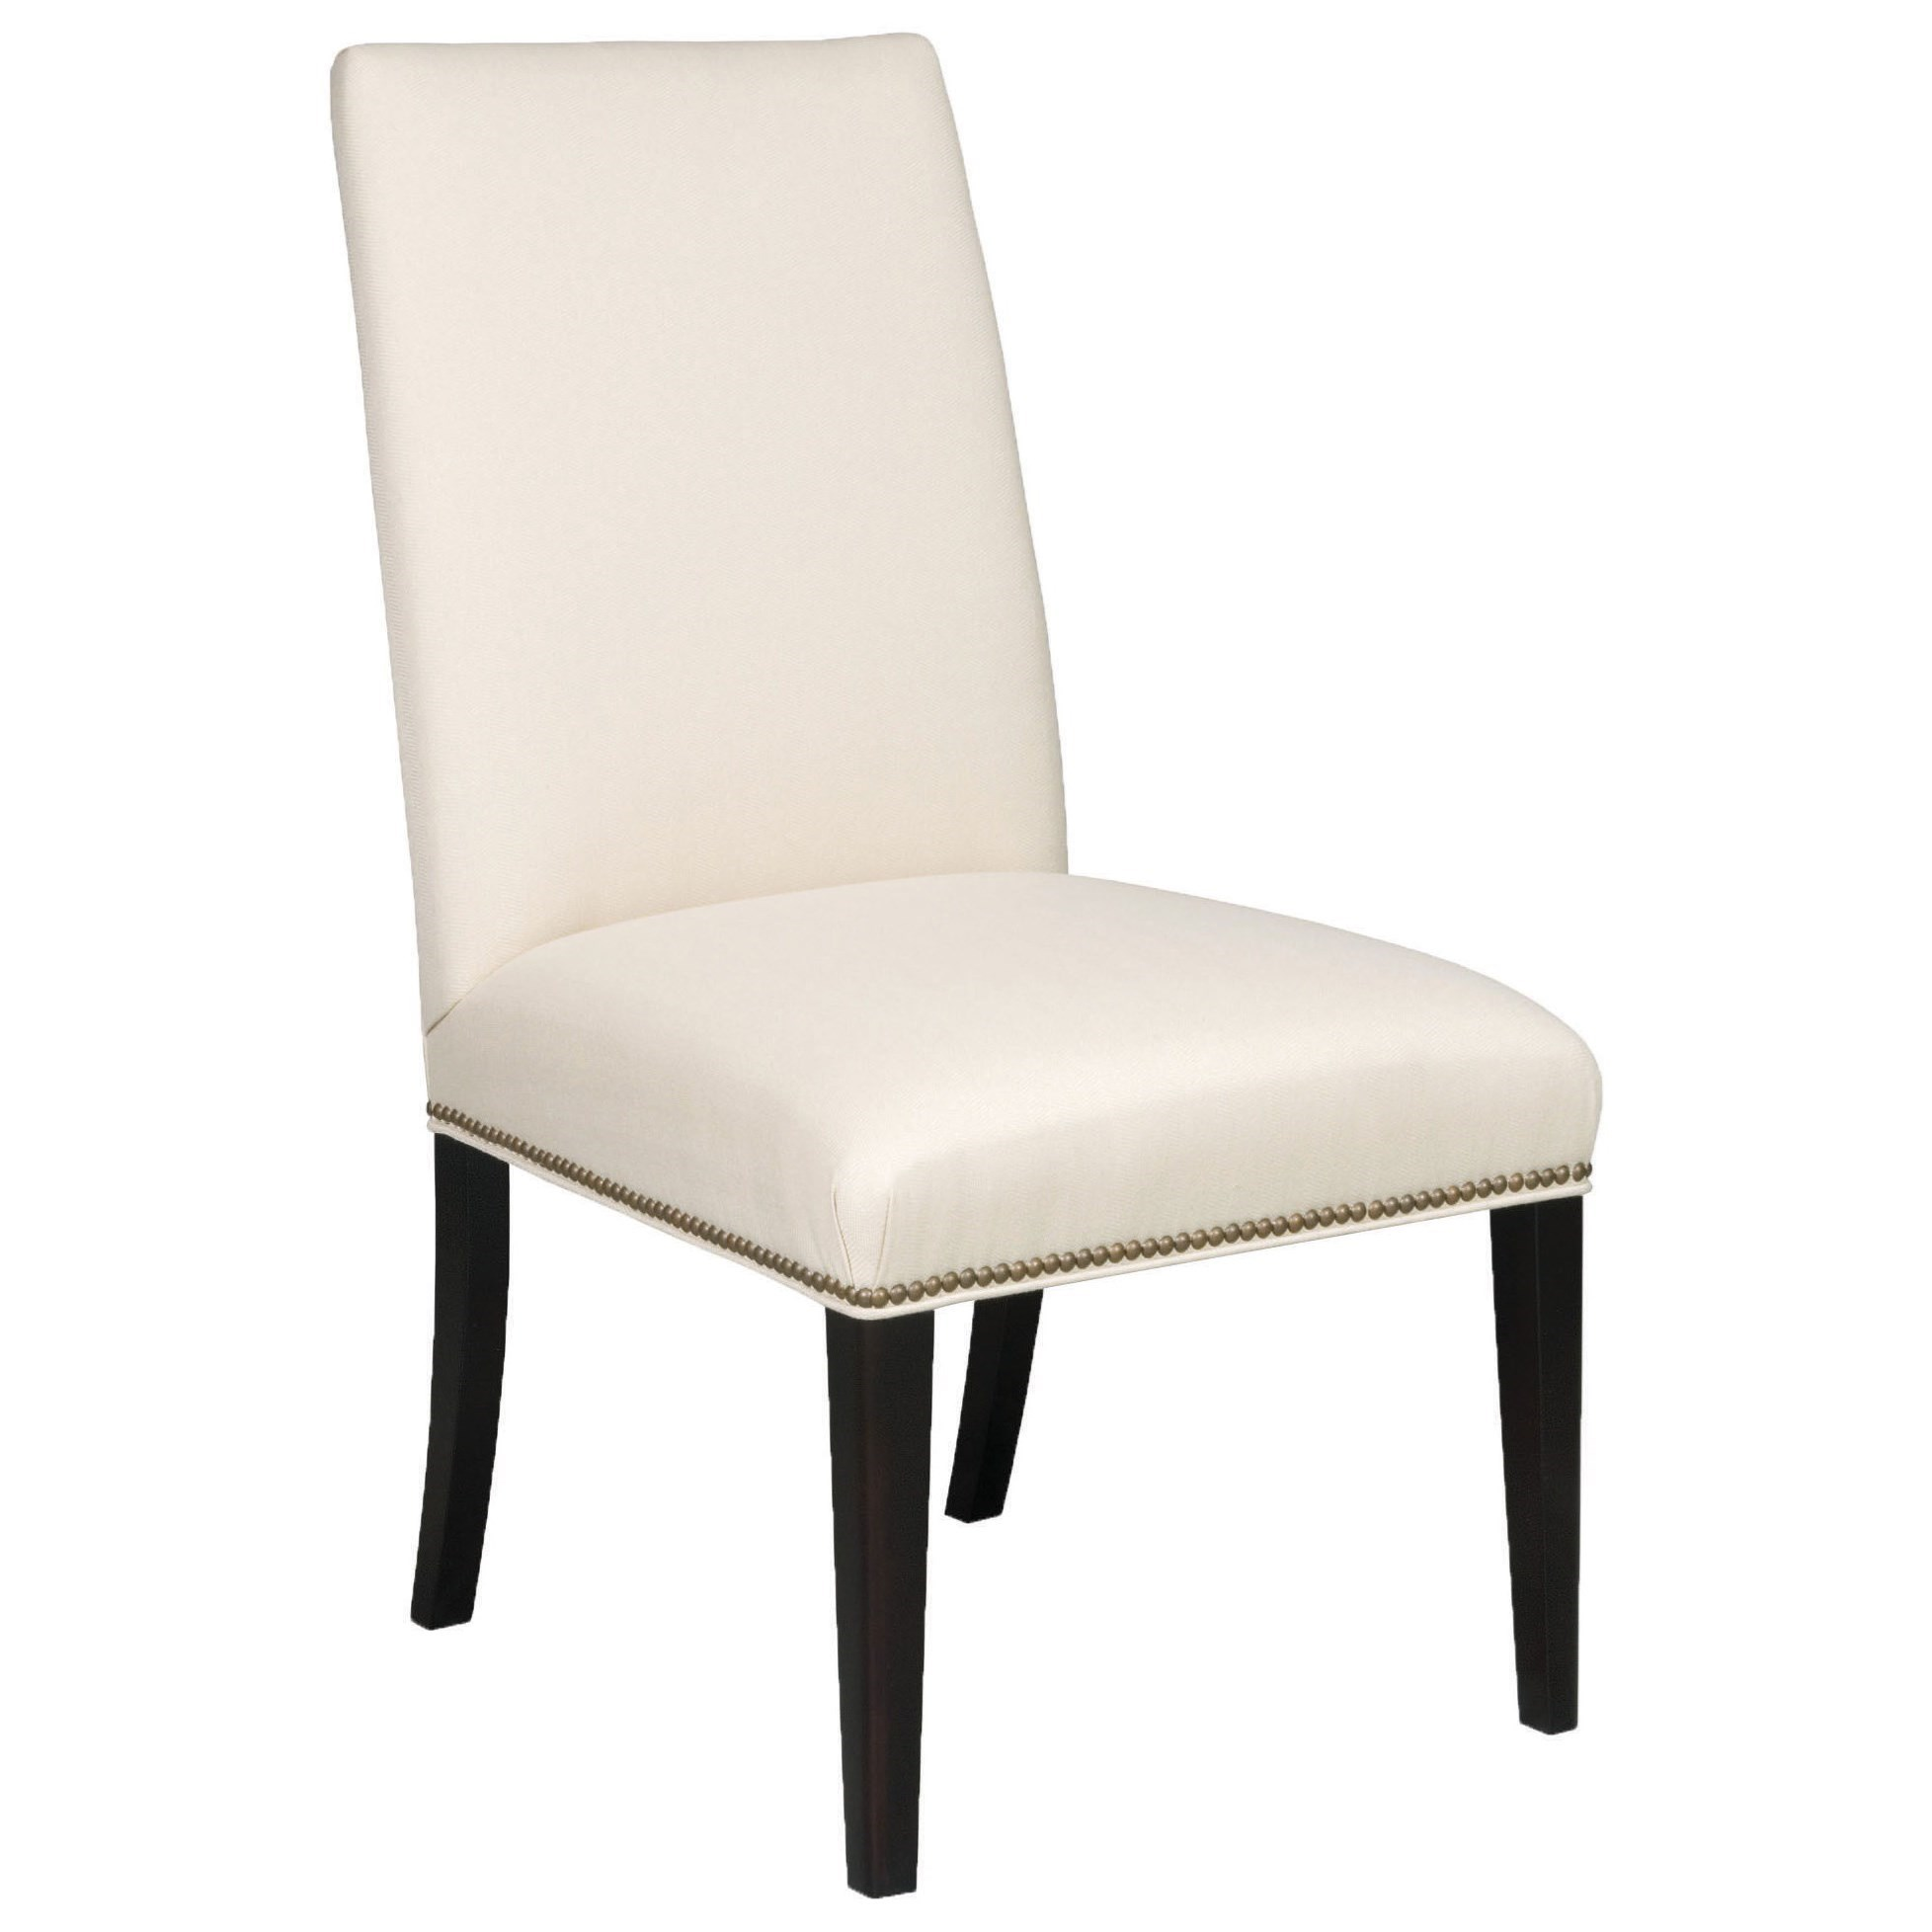 Michael Weiss Bailey Side Chair by Vanguard Furniture at Baer's Furniture